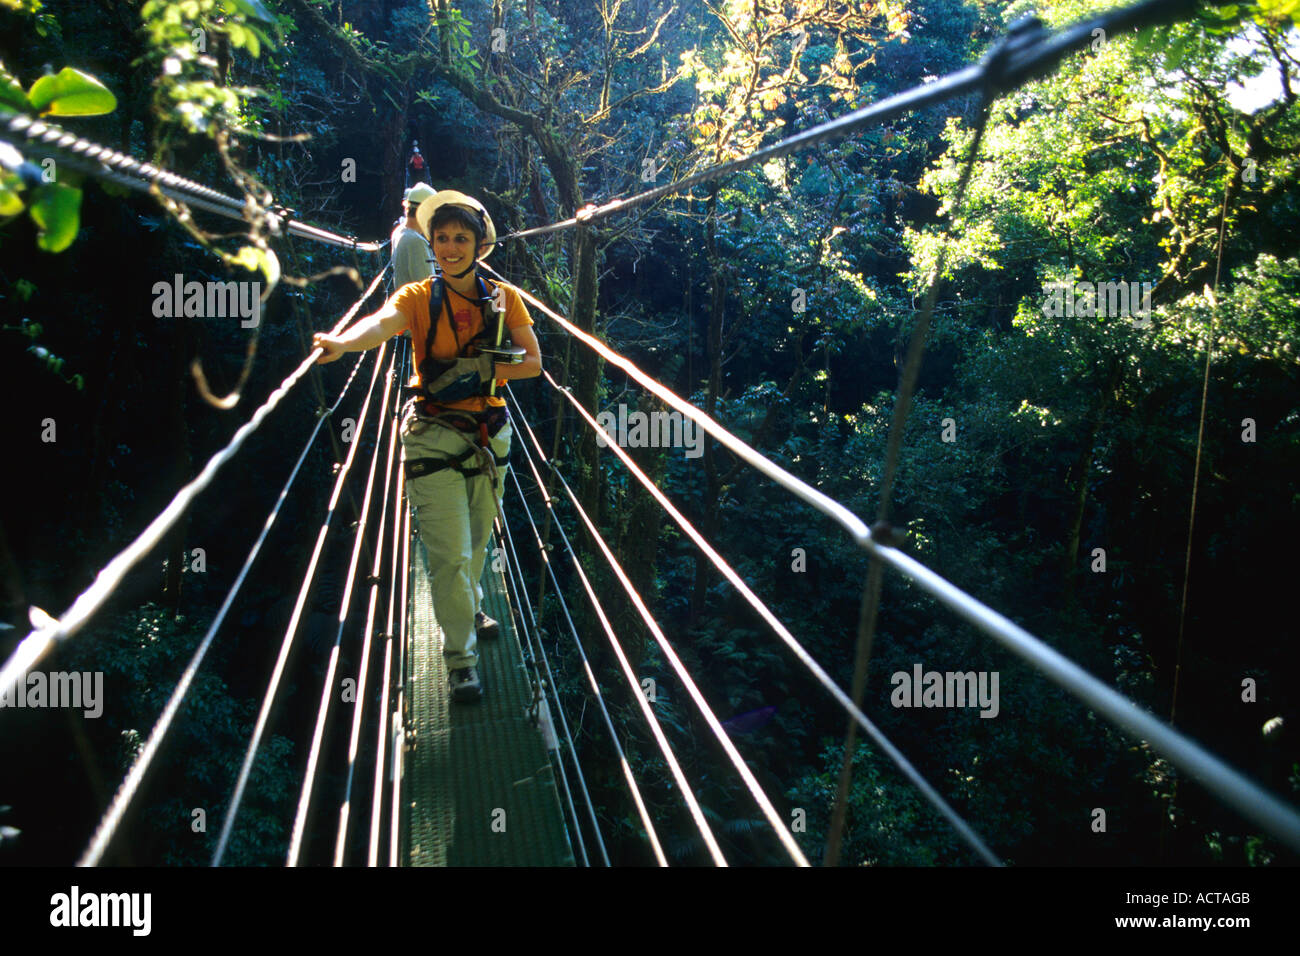 Woman on cable bridge through rainforest, Monteverde, Costa Rica - Stock Image